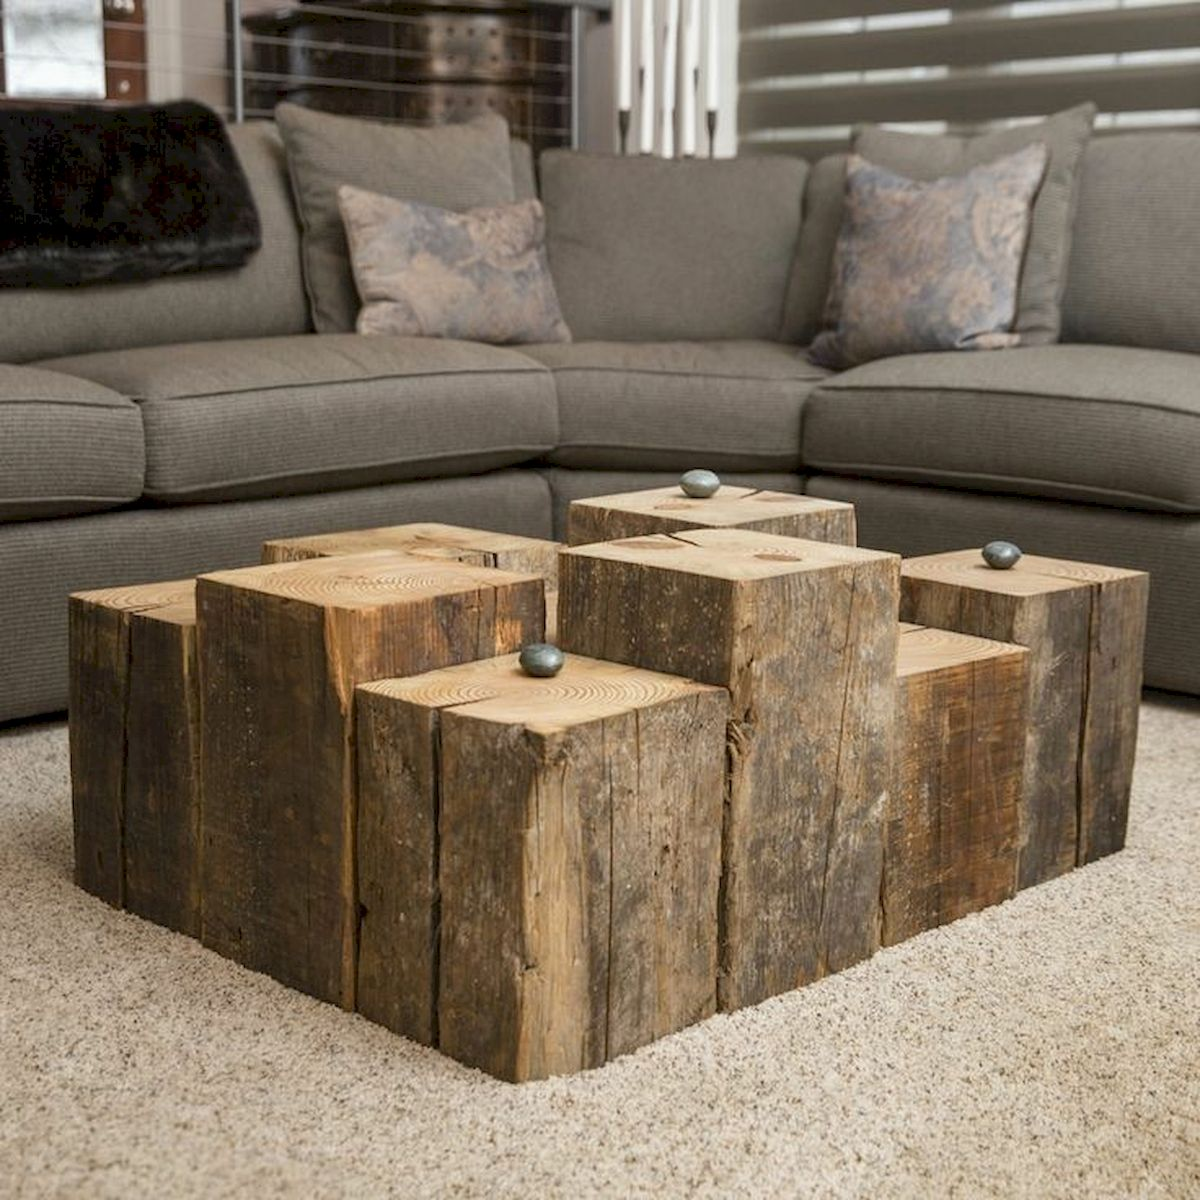 55 Awesome Furniture Living Room Table Design Ideas (1)